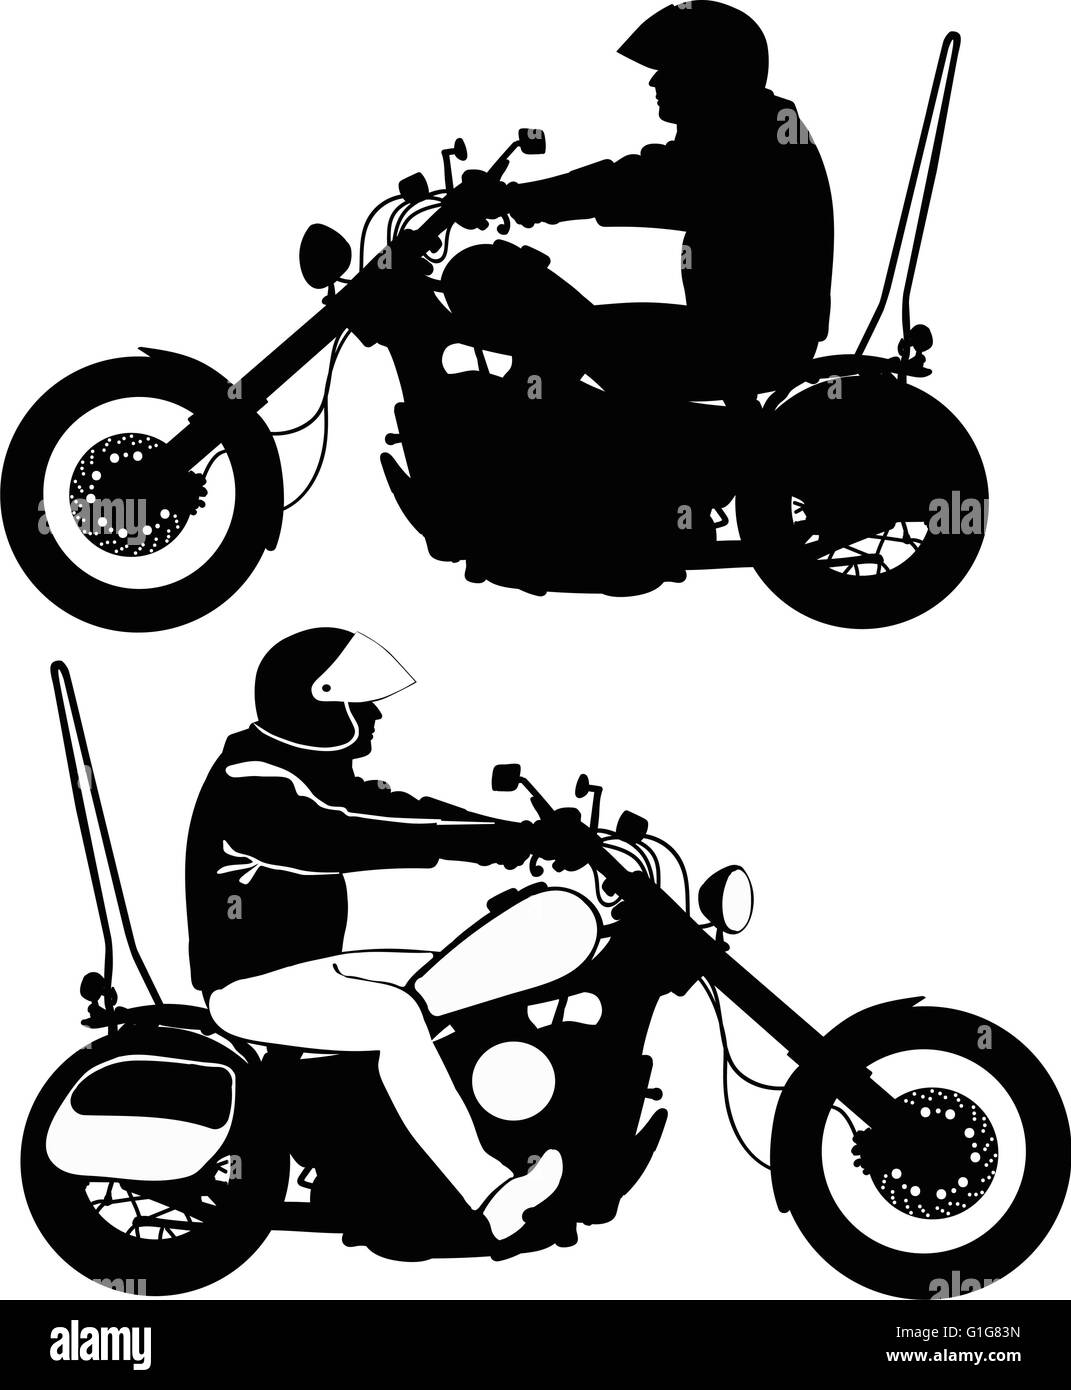 vintage race helmet black and white stock photos images alamy All American Soap Box Derby biker on motorcycle travels silhouette in black and white stock image